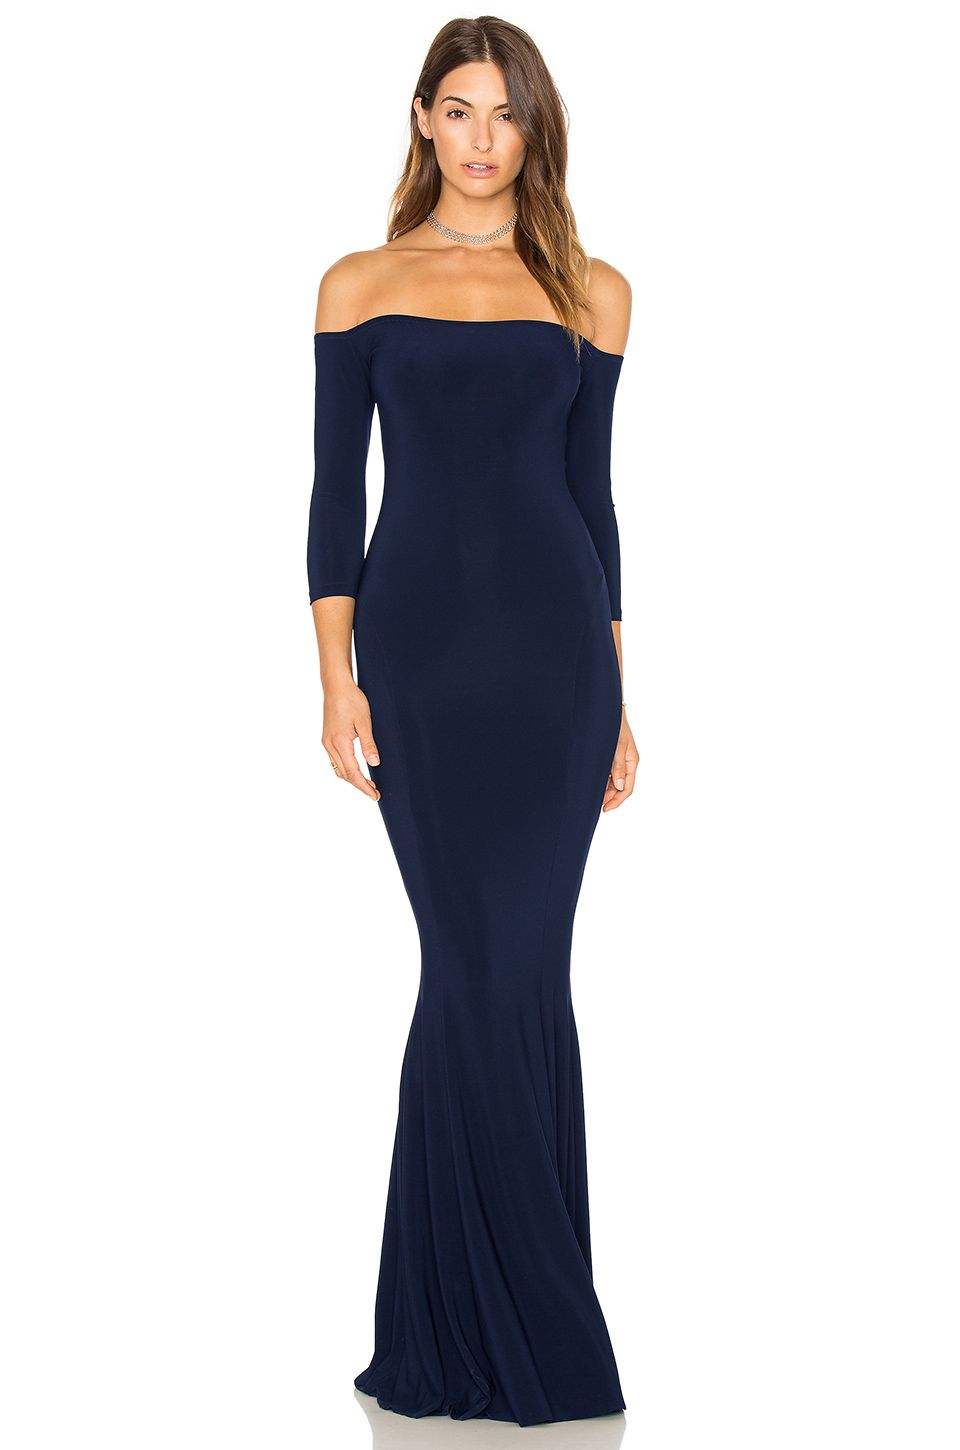 Norma Kamali Off The Shoulder Fishtail Gown #affiliate